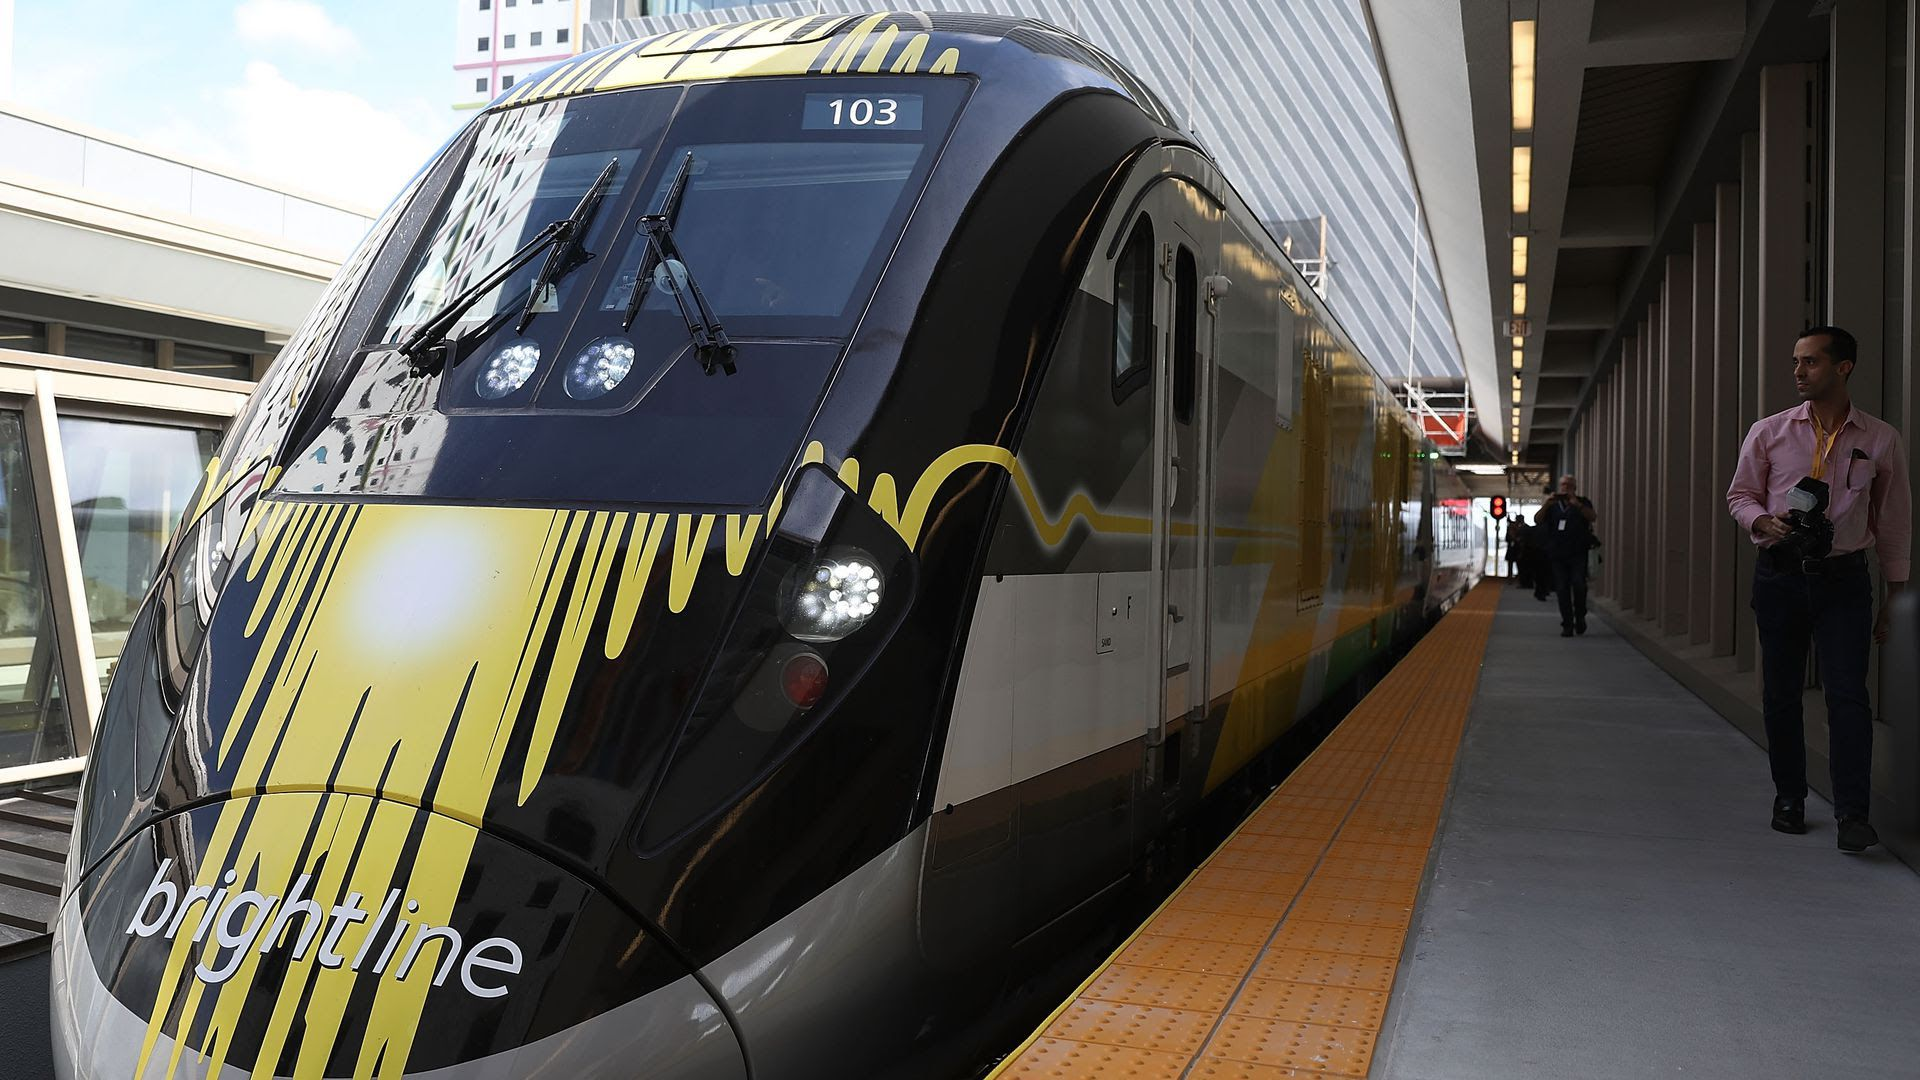 Private equity tycoon seeks public-private model for new Florida transit system thumbnail